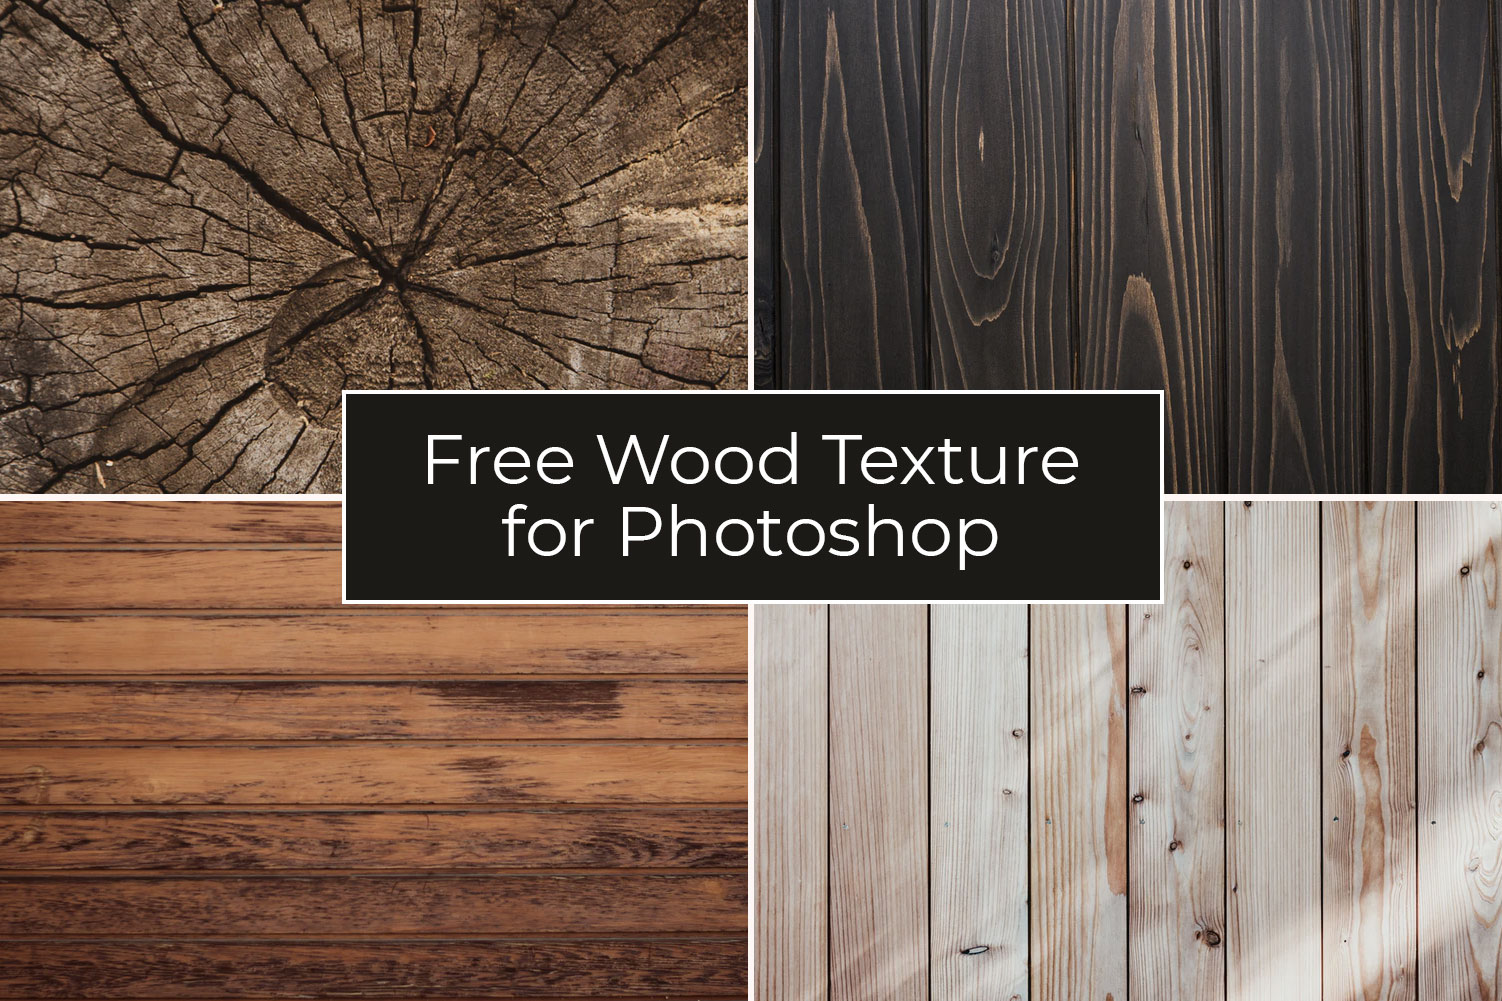 Free Wood Textures for Photoshop